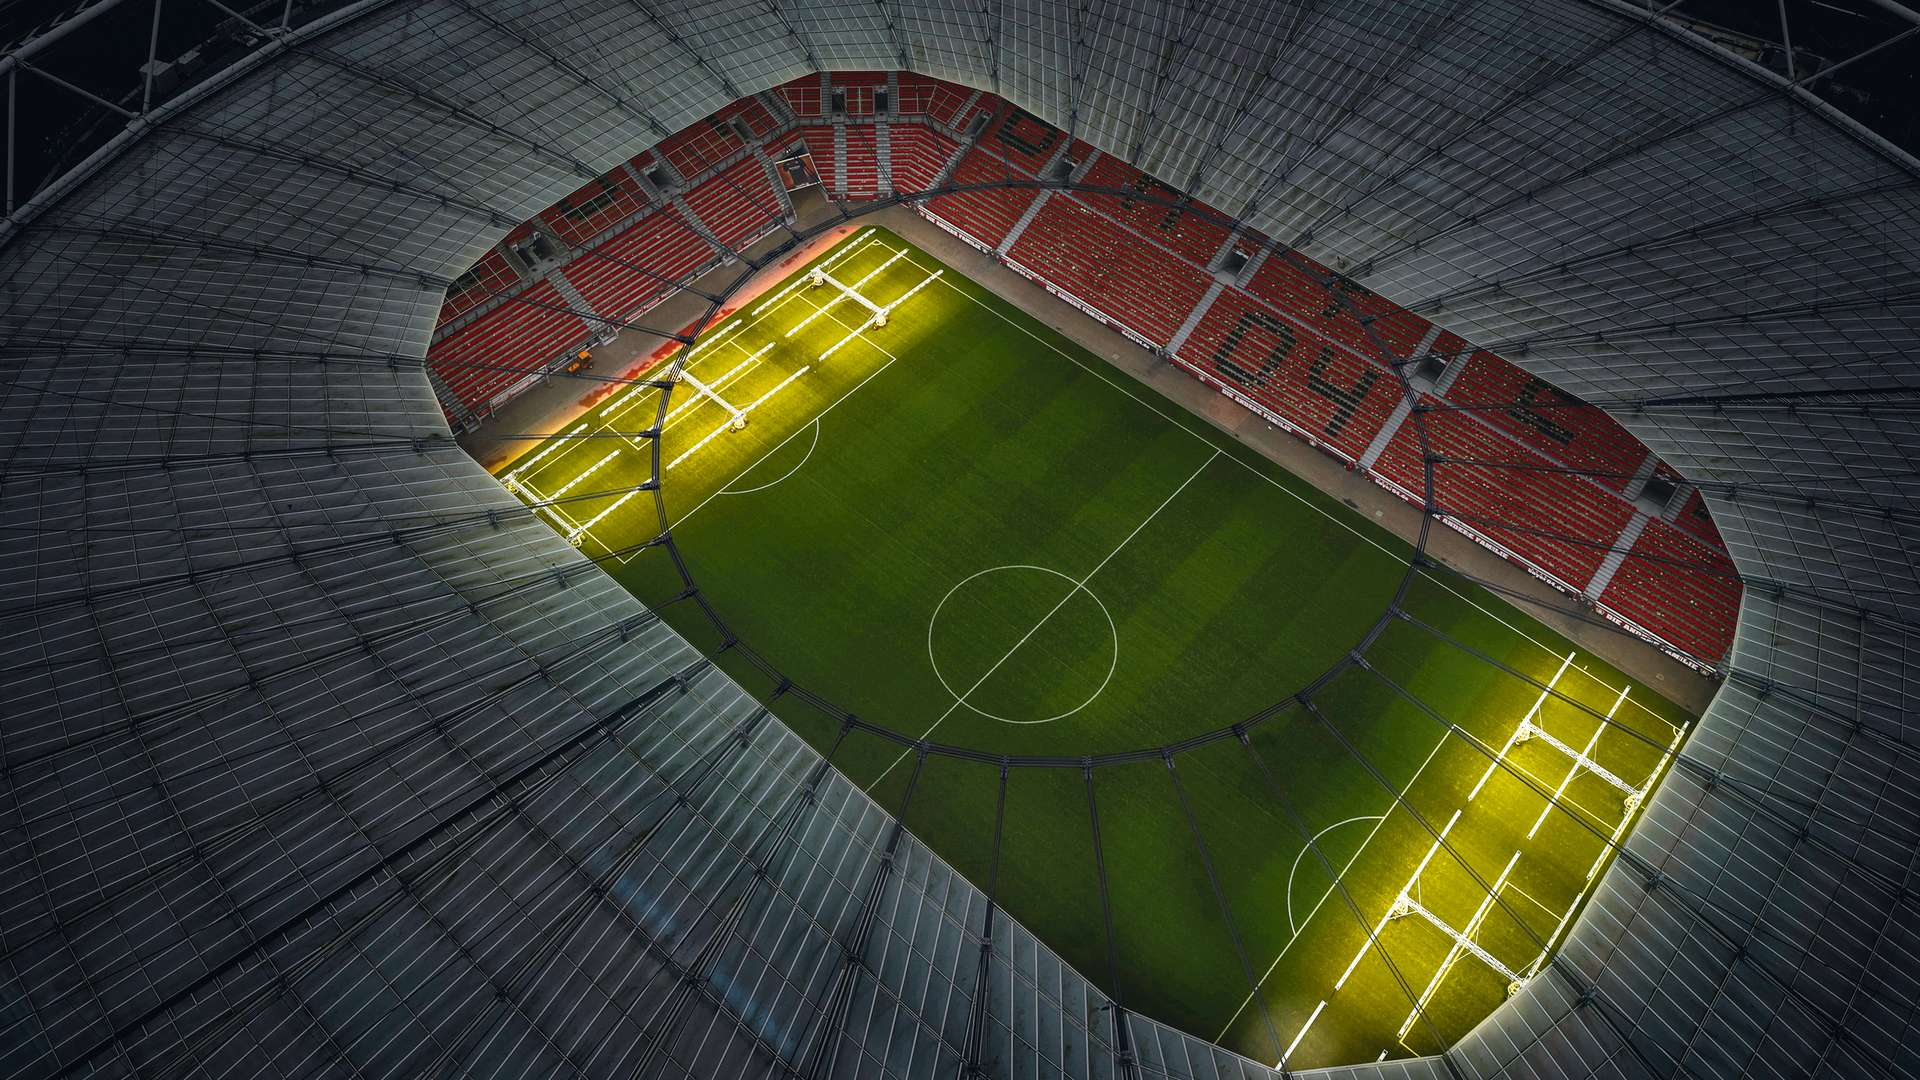 24 hours at the BayArena  – a stadium from 200 angles  5d3e1cabe5f9c